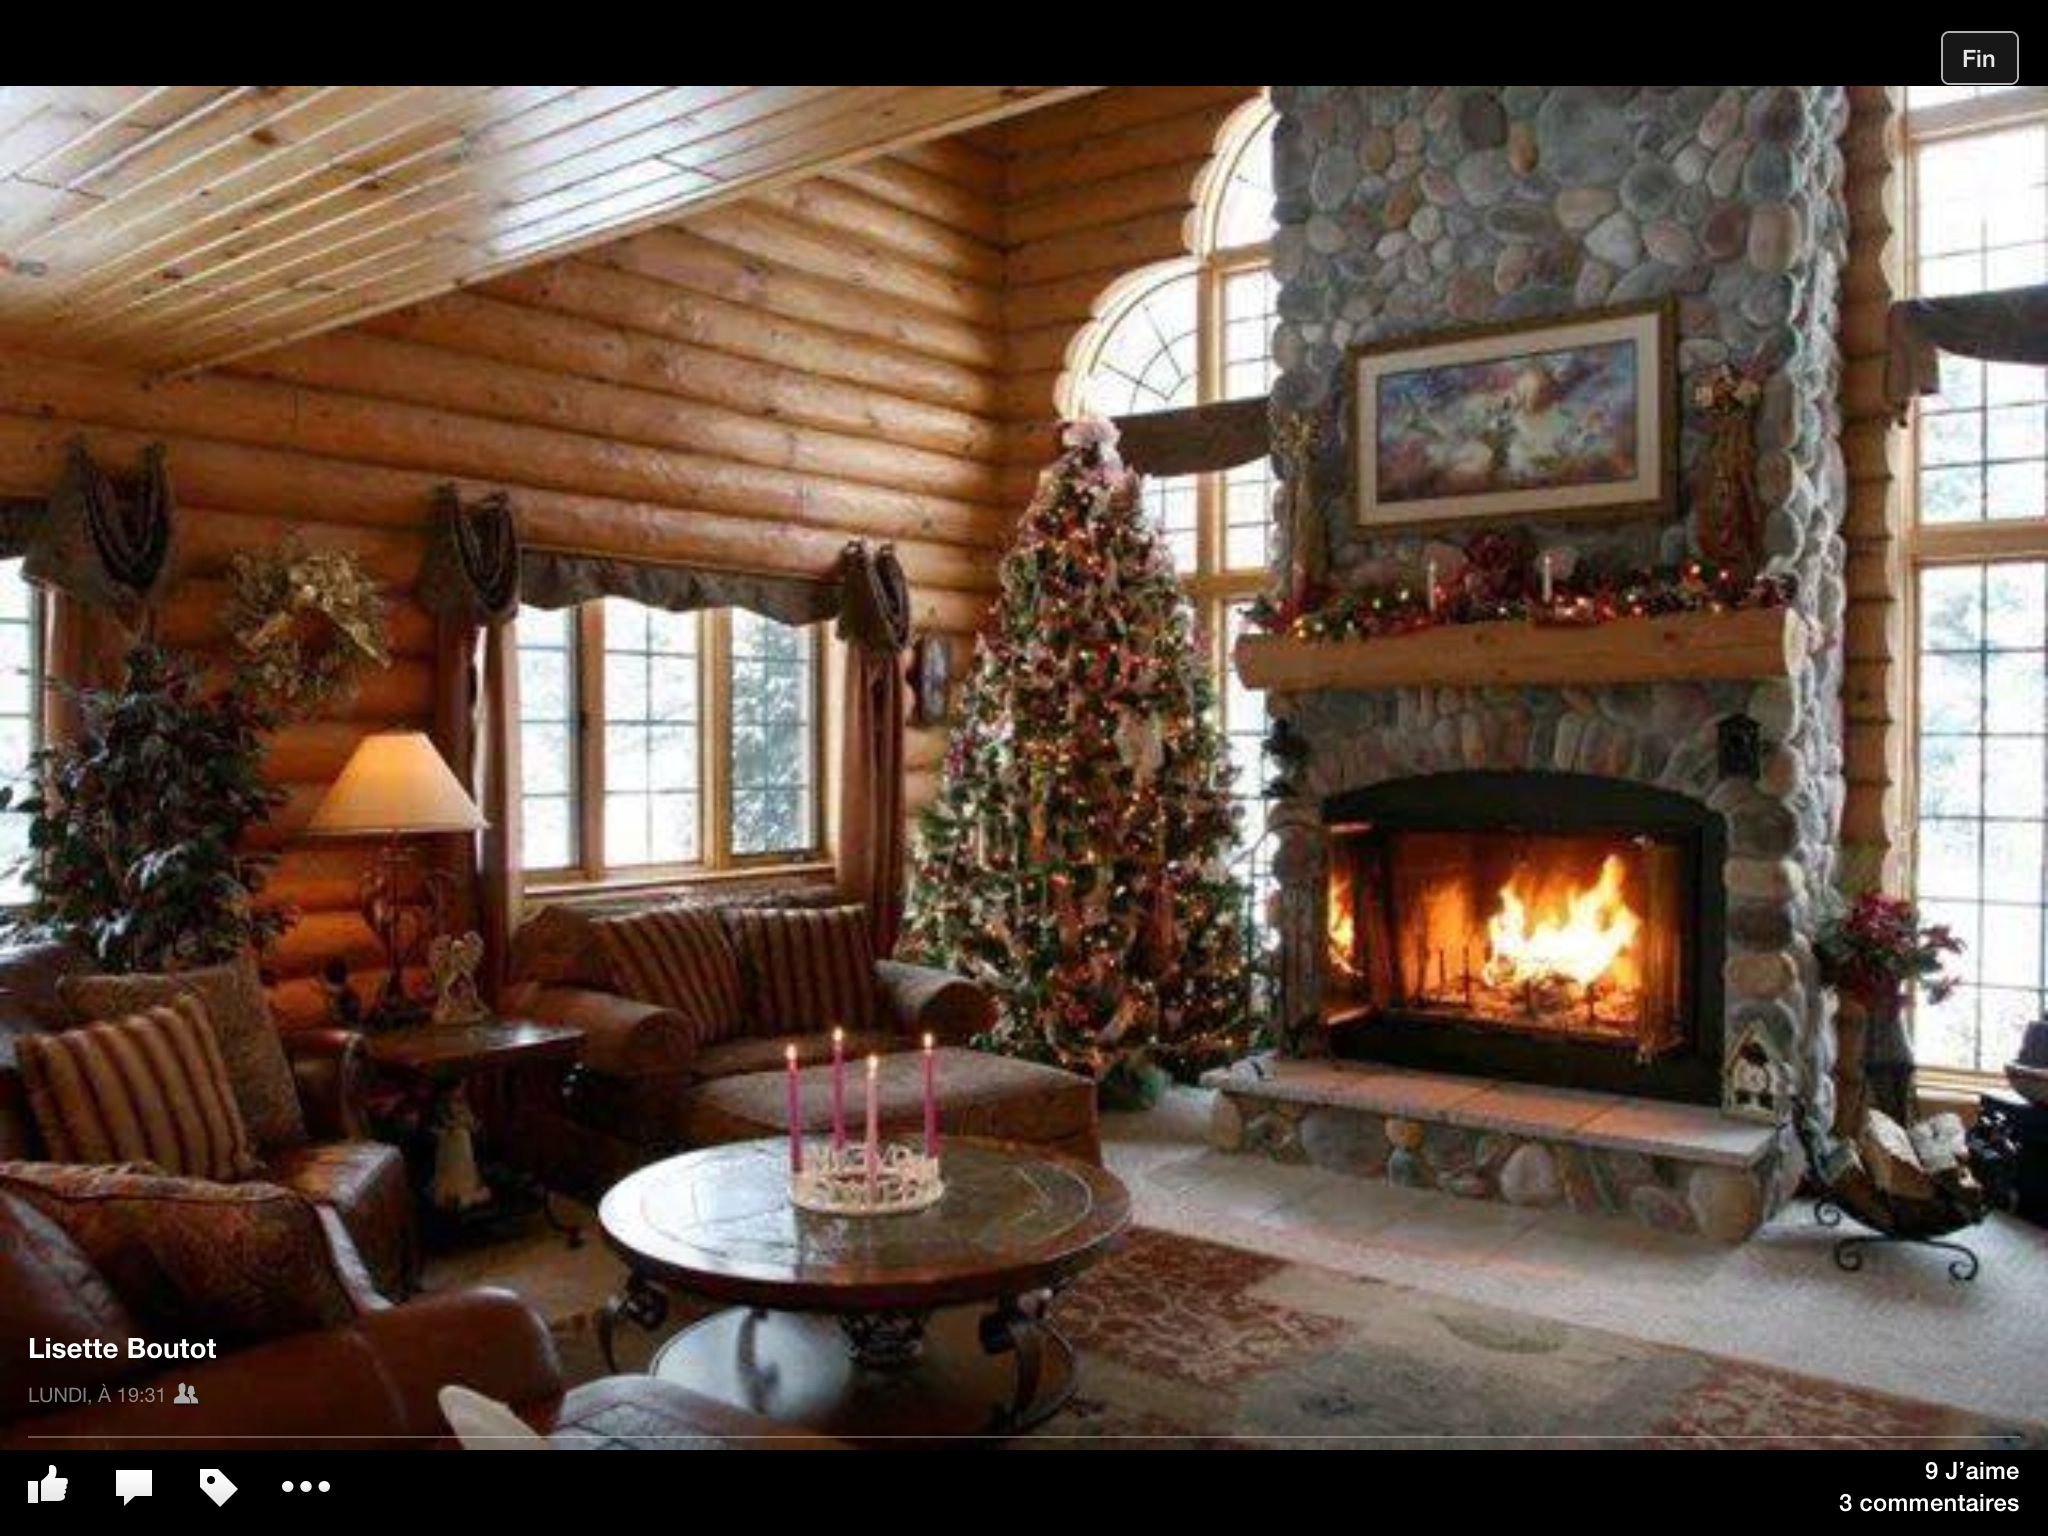 Decorations noel interieur chalet cabin sweet cabin for Decoration noel interieur maison